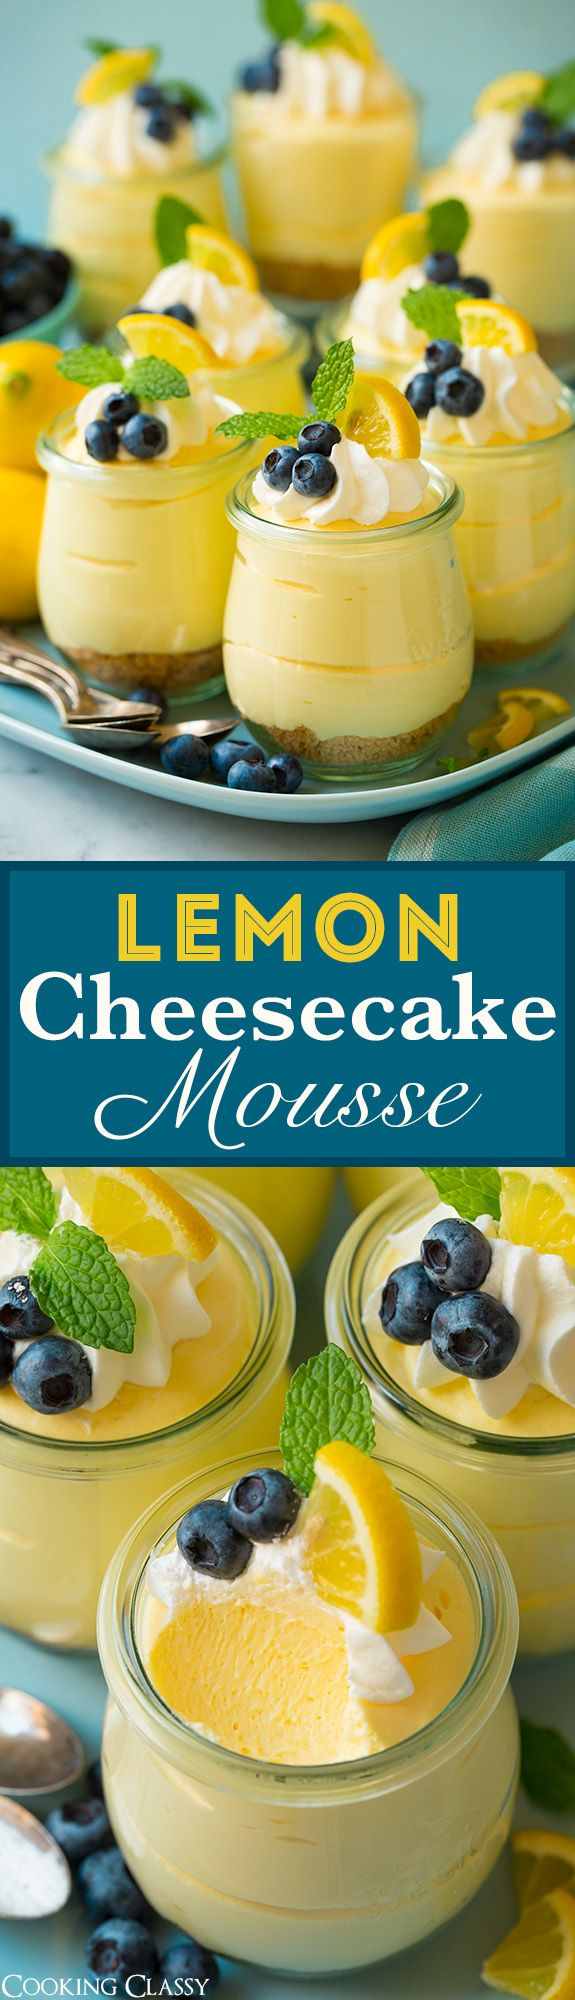 Lemon Cheesecake Mousse - the ULTIMATE springet dessert! These are to die for! No one can stop at one bite!